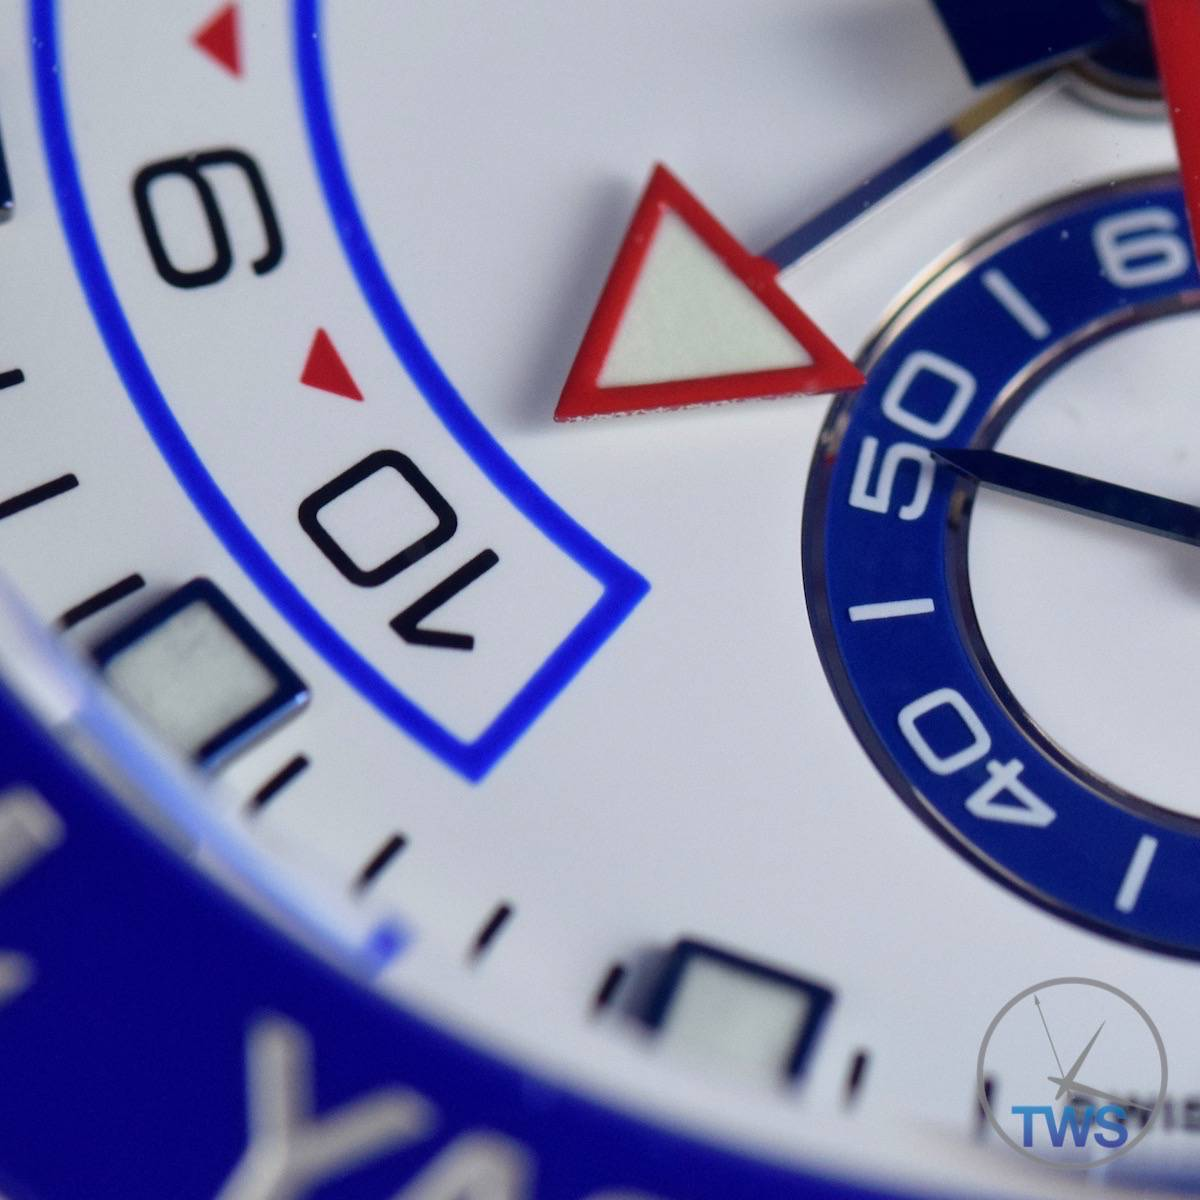 Rolex yachtmaster ii hands on review 116680 the watch source blog regatta chronograph count down indexes for the rolex yachtmaster ii hands on review biocorpaavc Choice Image